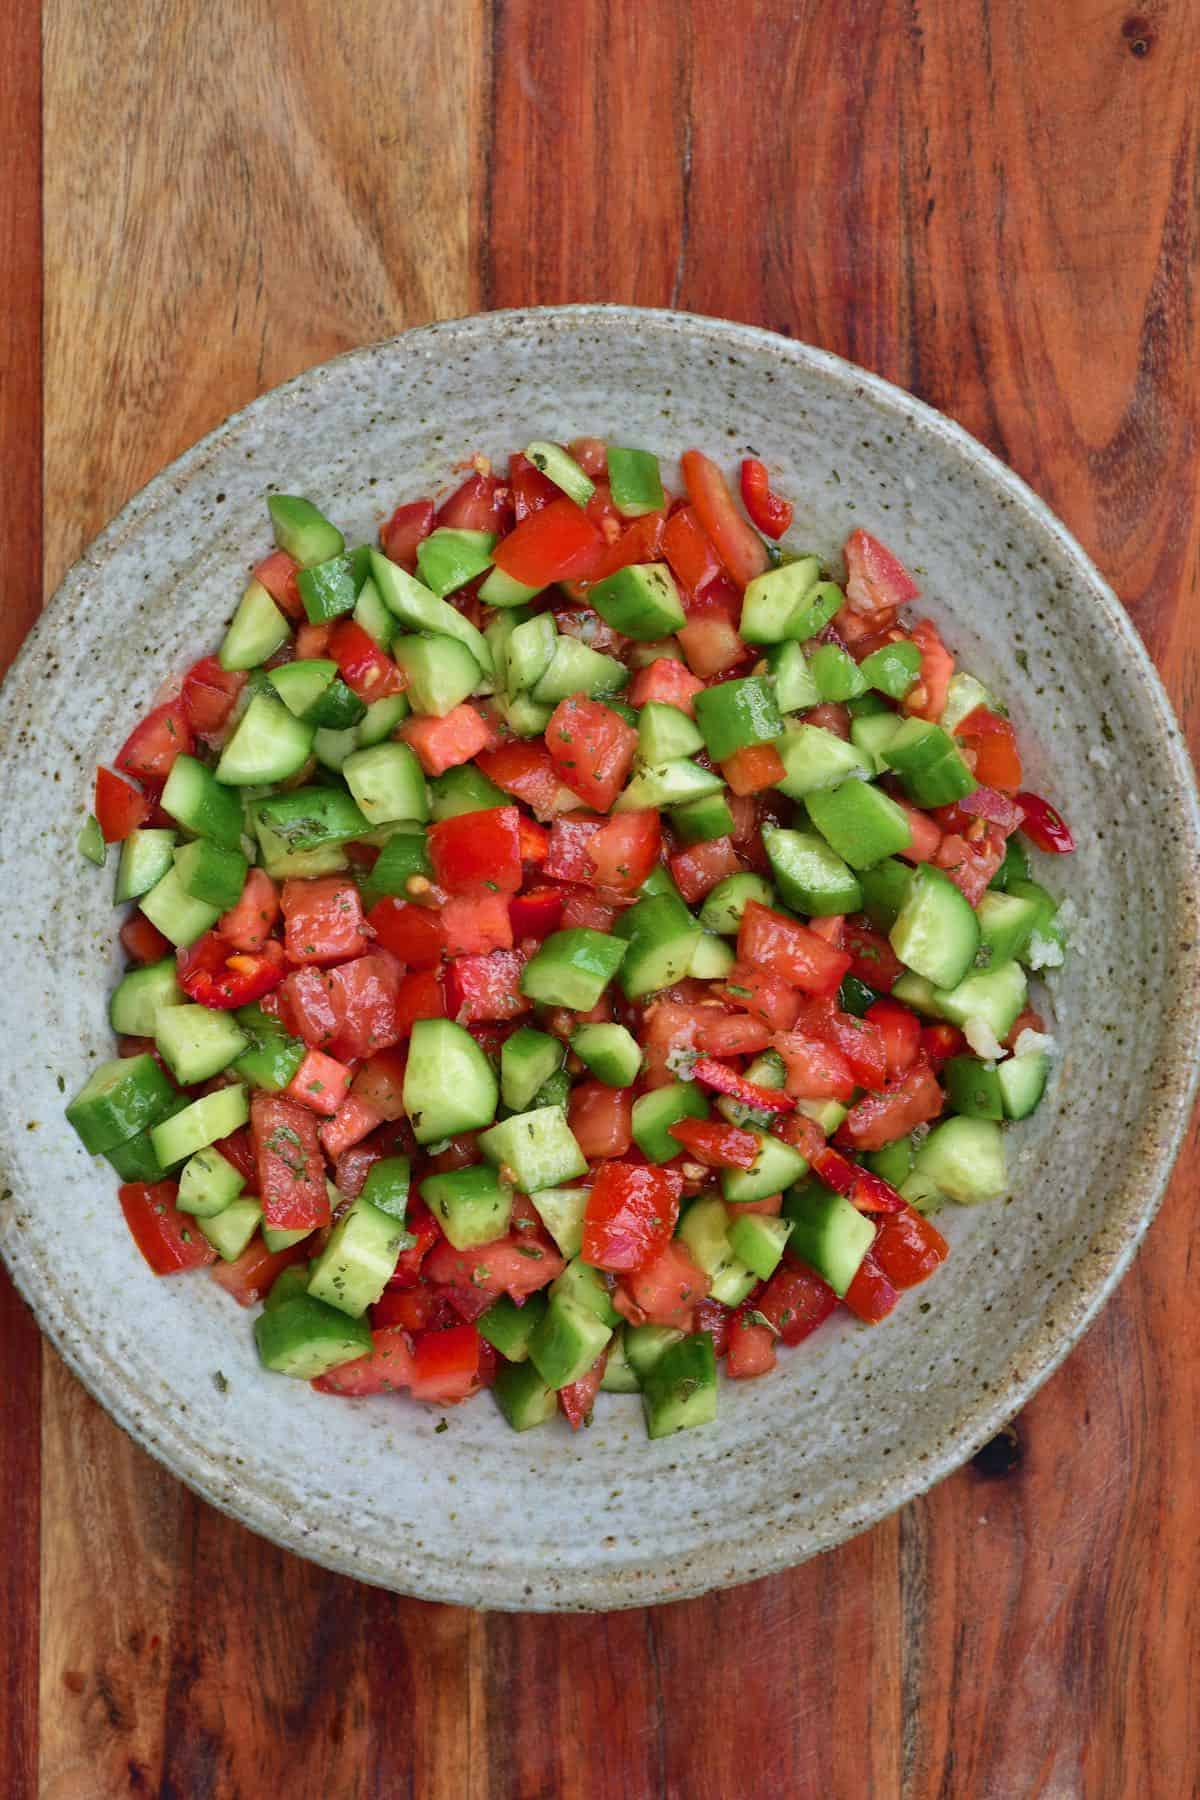 Mixed tomato and cucumber salad